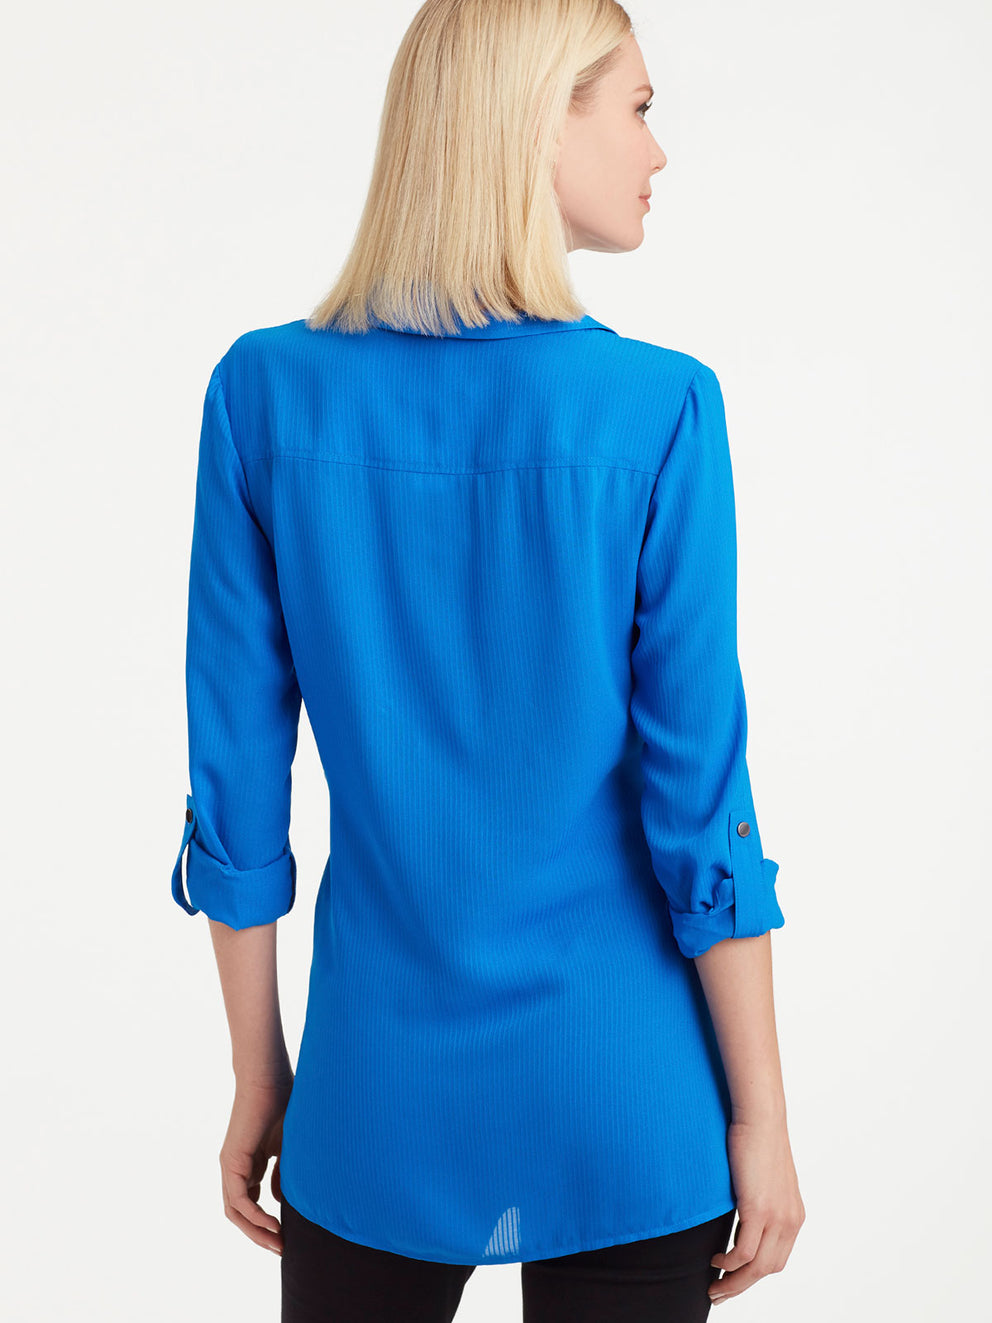 The Jones New York Twist Front Shirt in color Bright Sapphire - Image Position 3